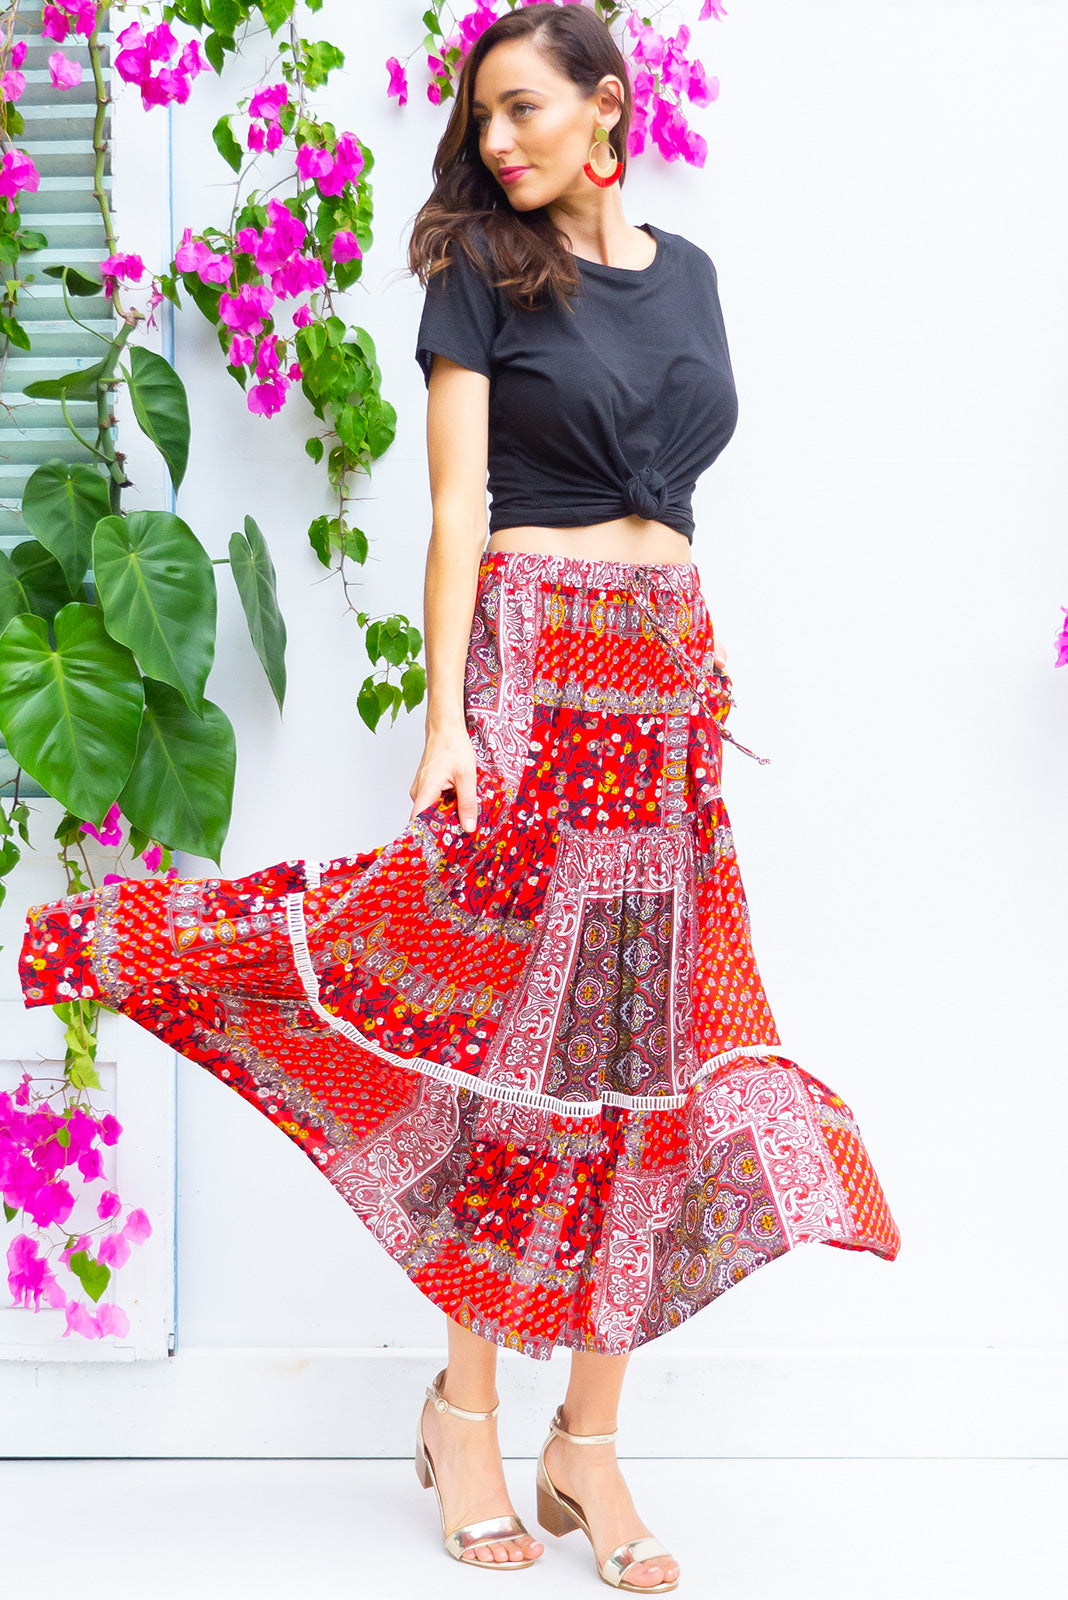 Bonnie Esmerelda Red Maxi Skirt is a tiered skirt and features an elasticated waist, side pockets and cotton insertion lace and it comes in a bright red patchwork bohemian print